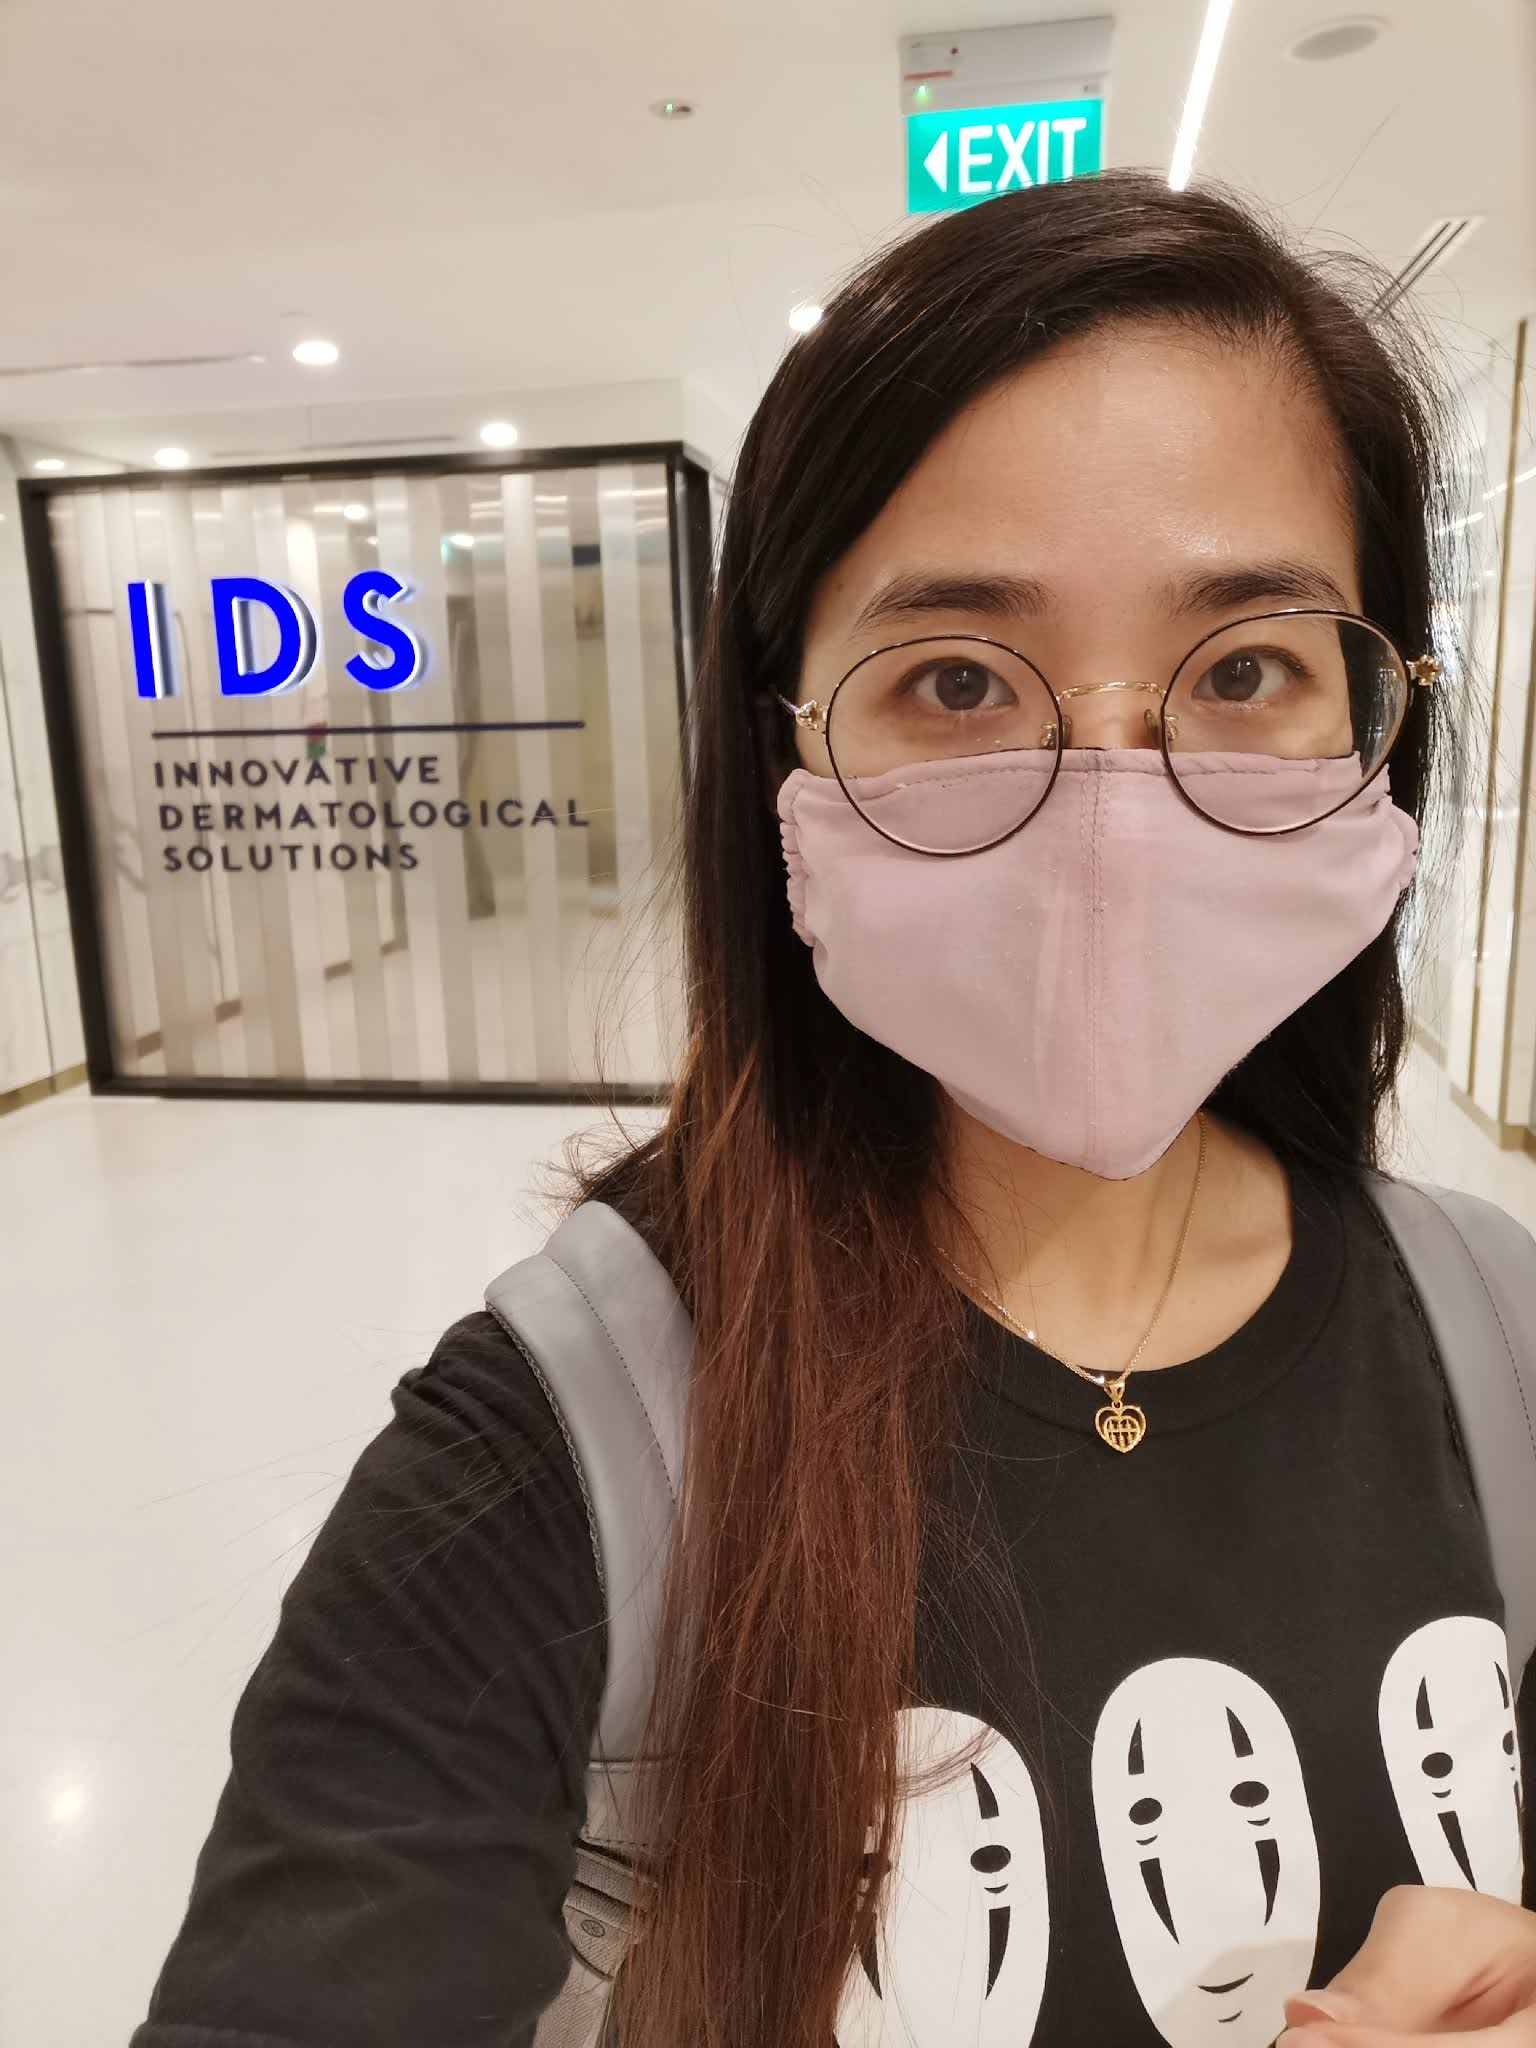 [ Mia Foo ] My #IDSTransformMe Journey: Pico-Laser Treatment after IDS Skincare